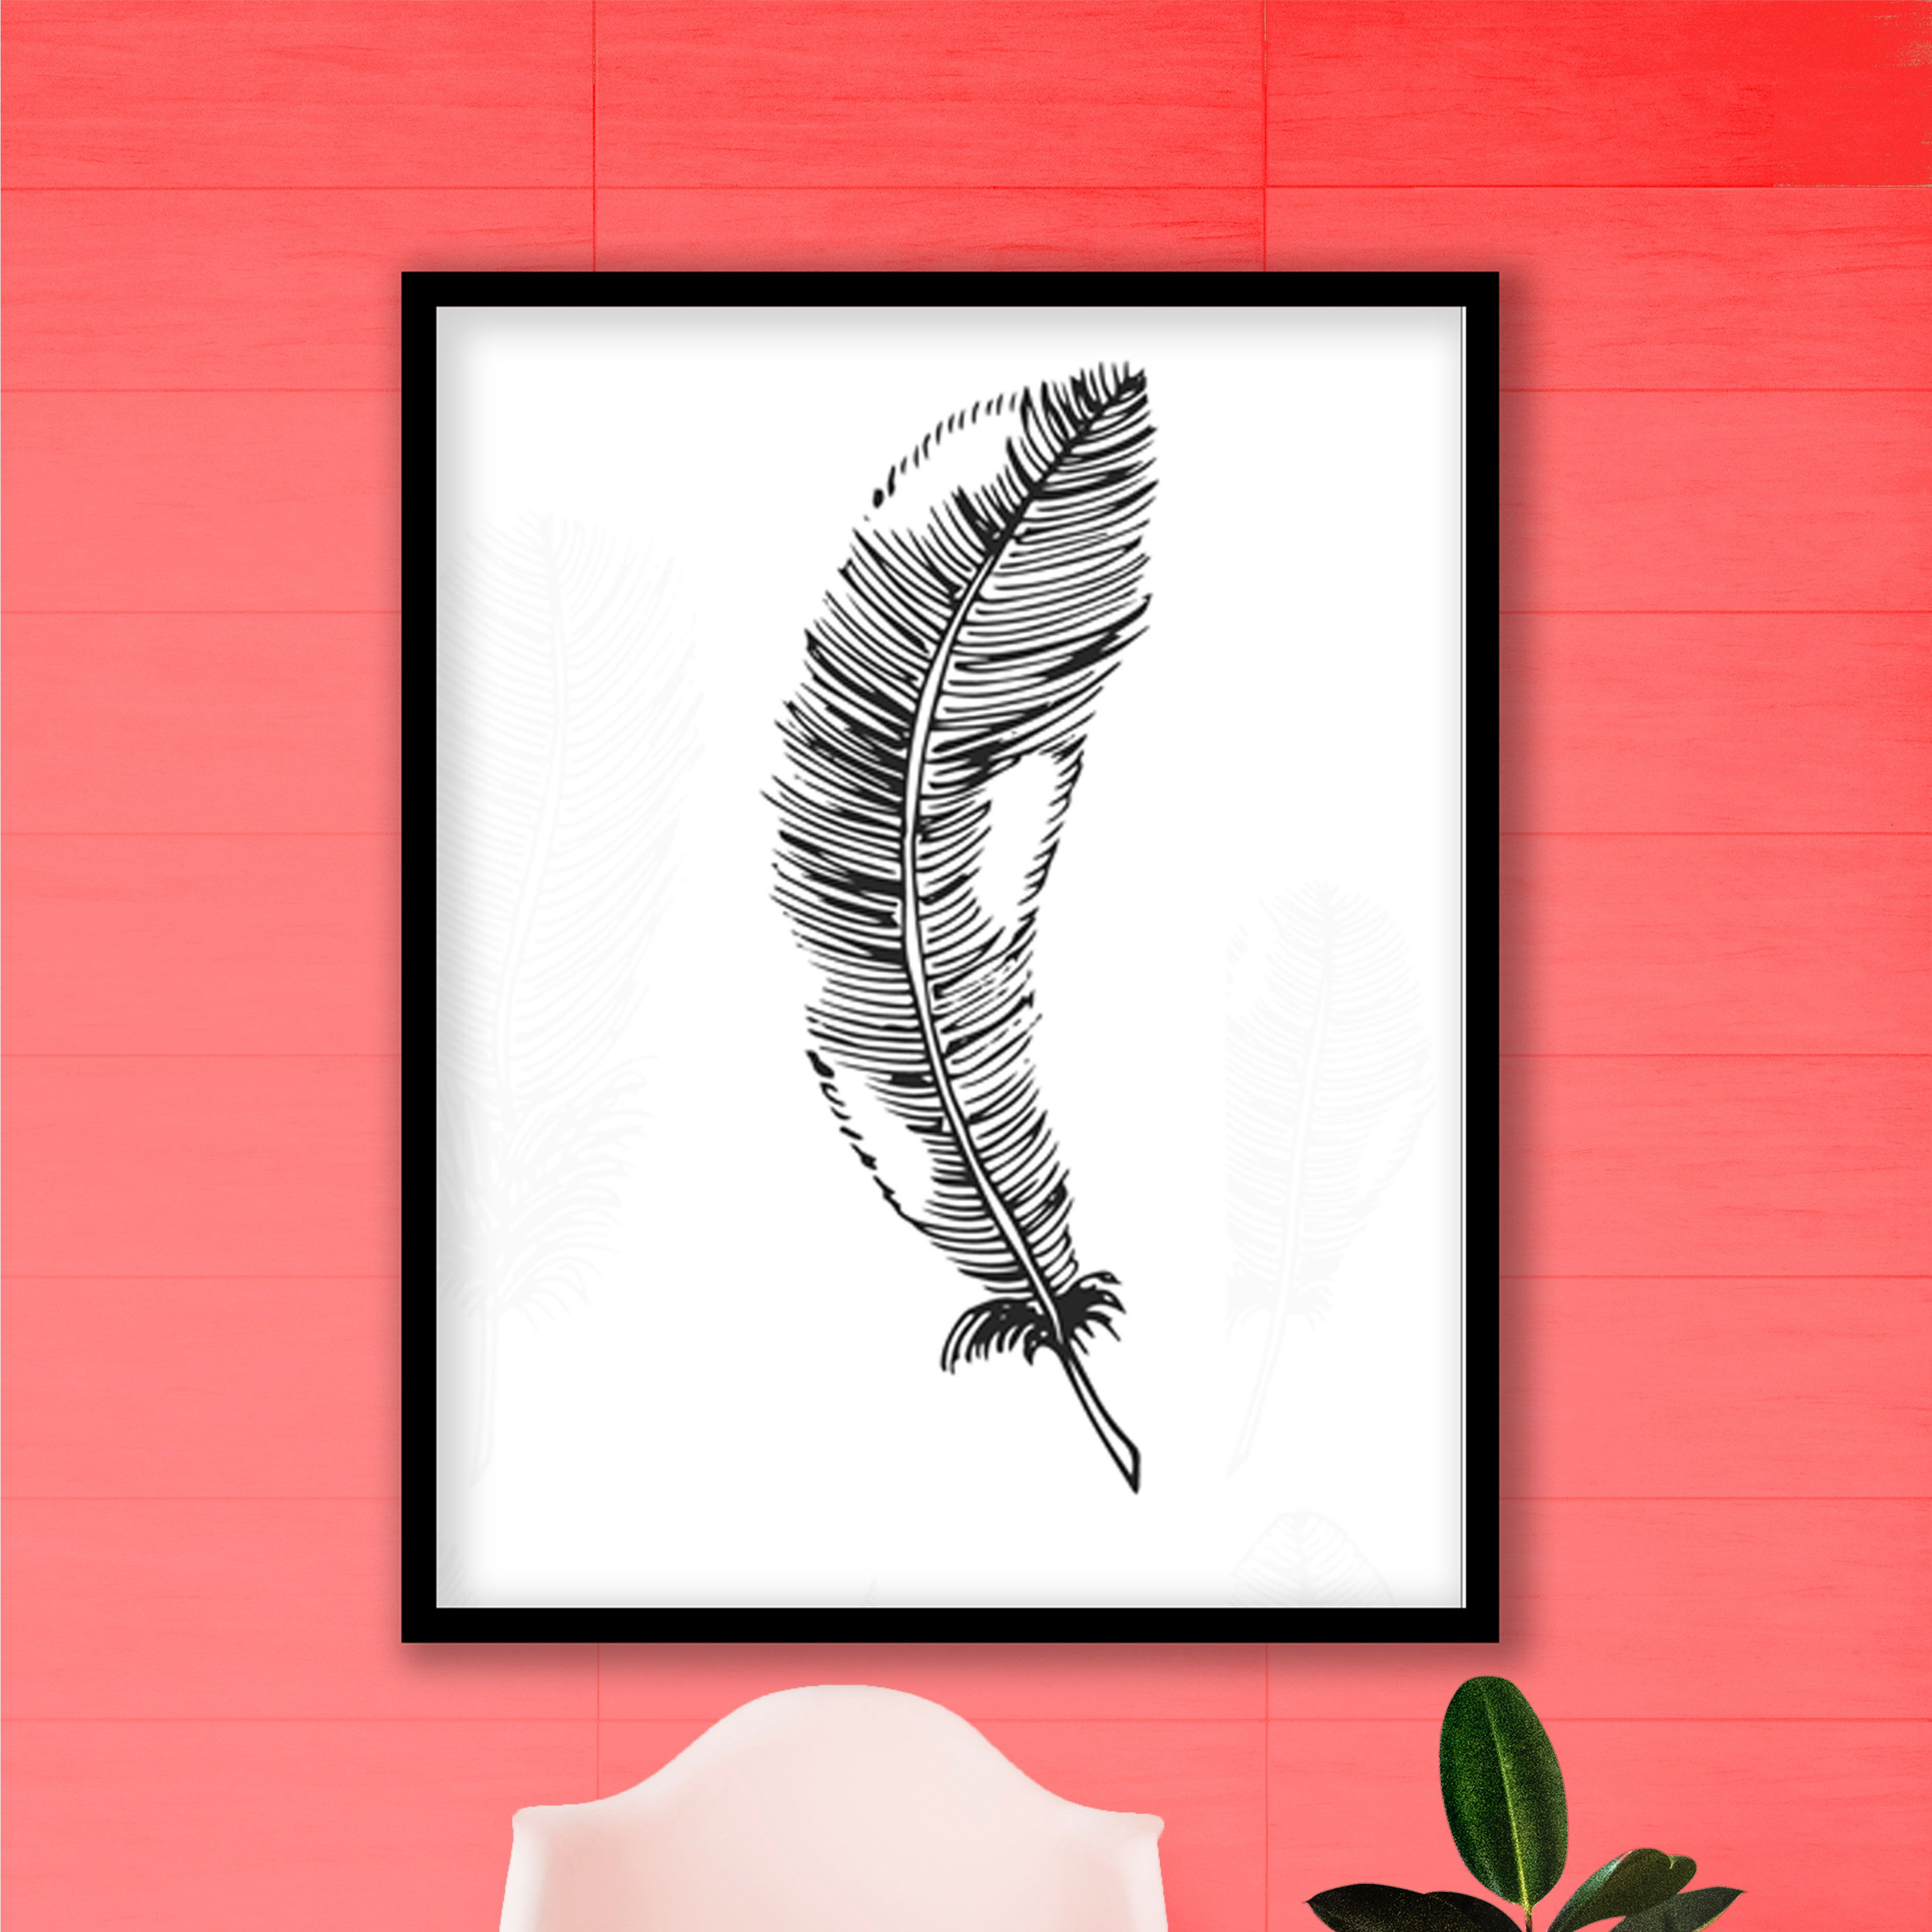 Feather 26 watercolor painting Framed Wall art, Ready